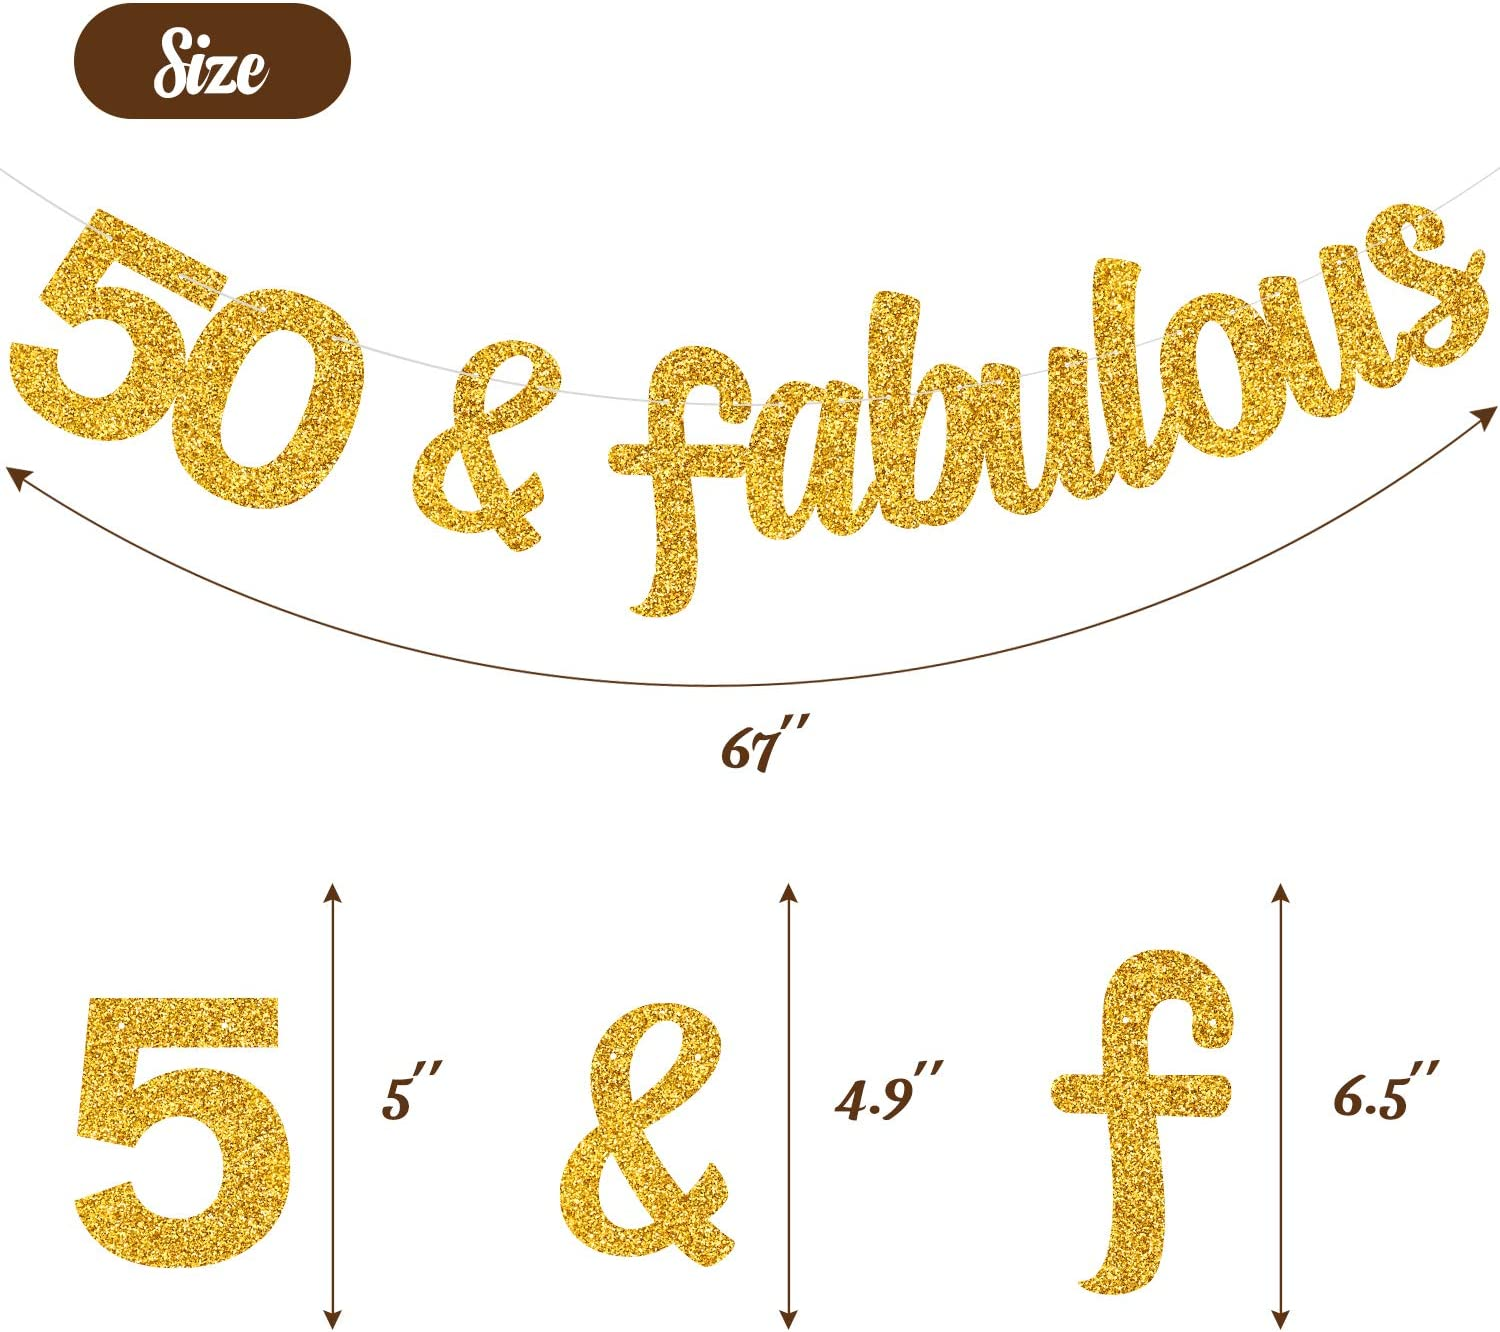 MAGBEA 50 /& Fabulous Banner Milestone Birthday Party Decor Happy 50th Birthday Party Decoration for 50th Birthday Wedding Anniversary Supplies Gold Glitter /& Double Sided